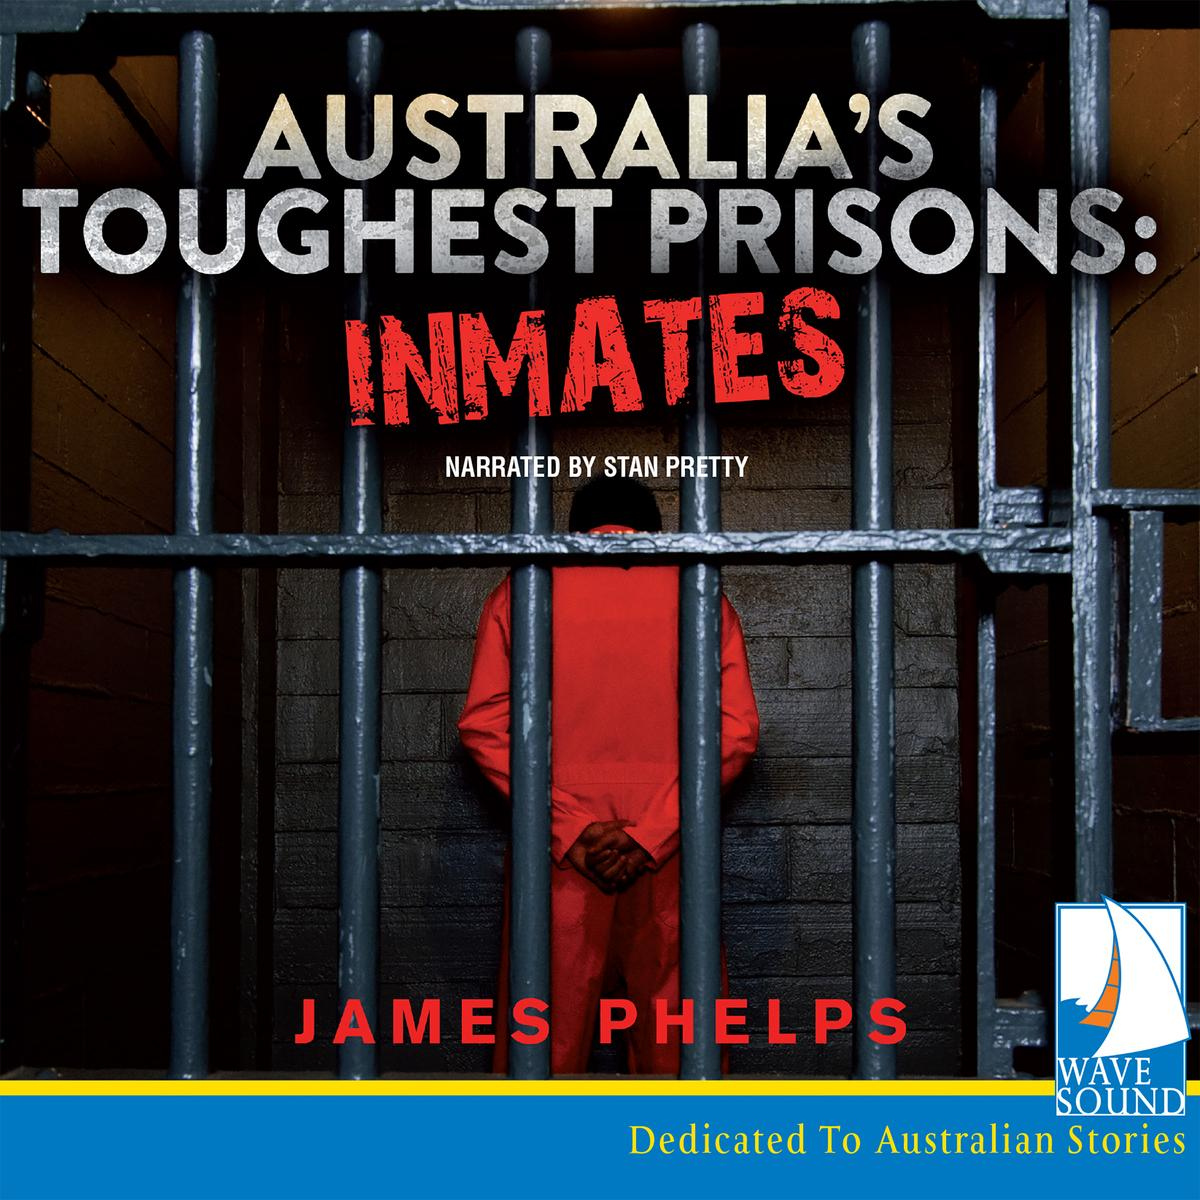 Australia's Toughest Prisons: Inmates - Audiobook